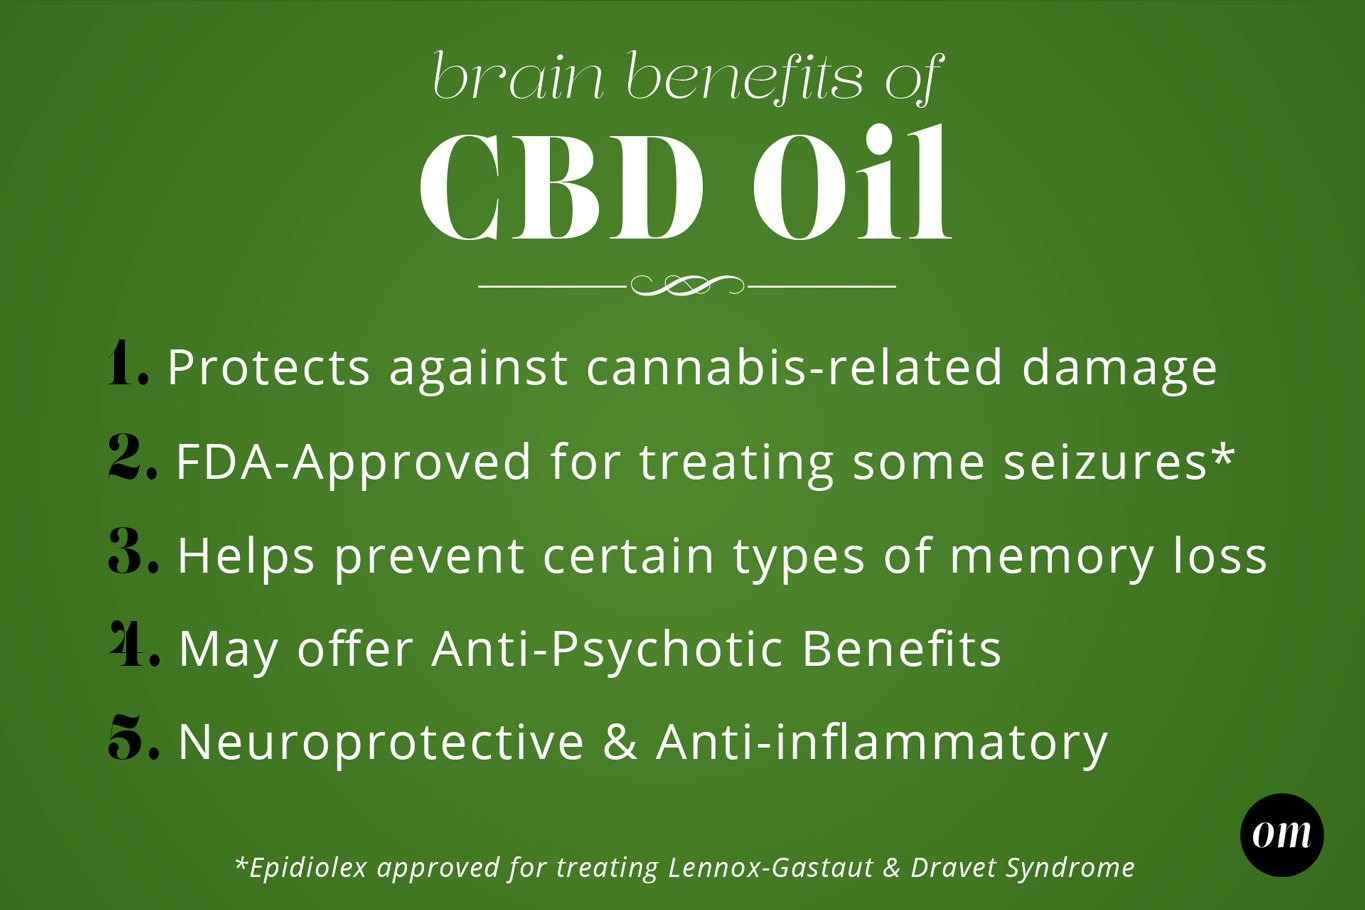 CBD Oil Brain Benefits Infographic